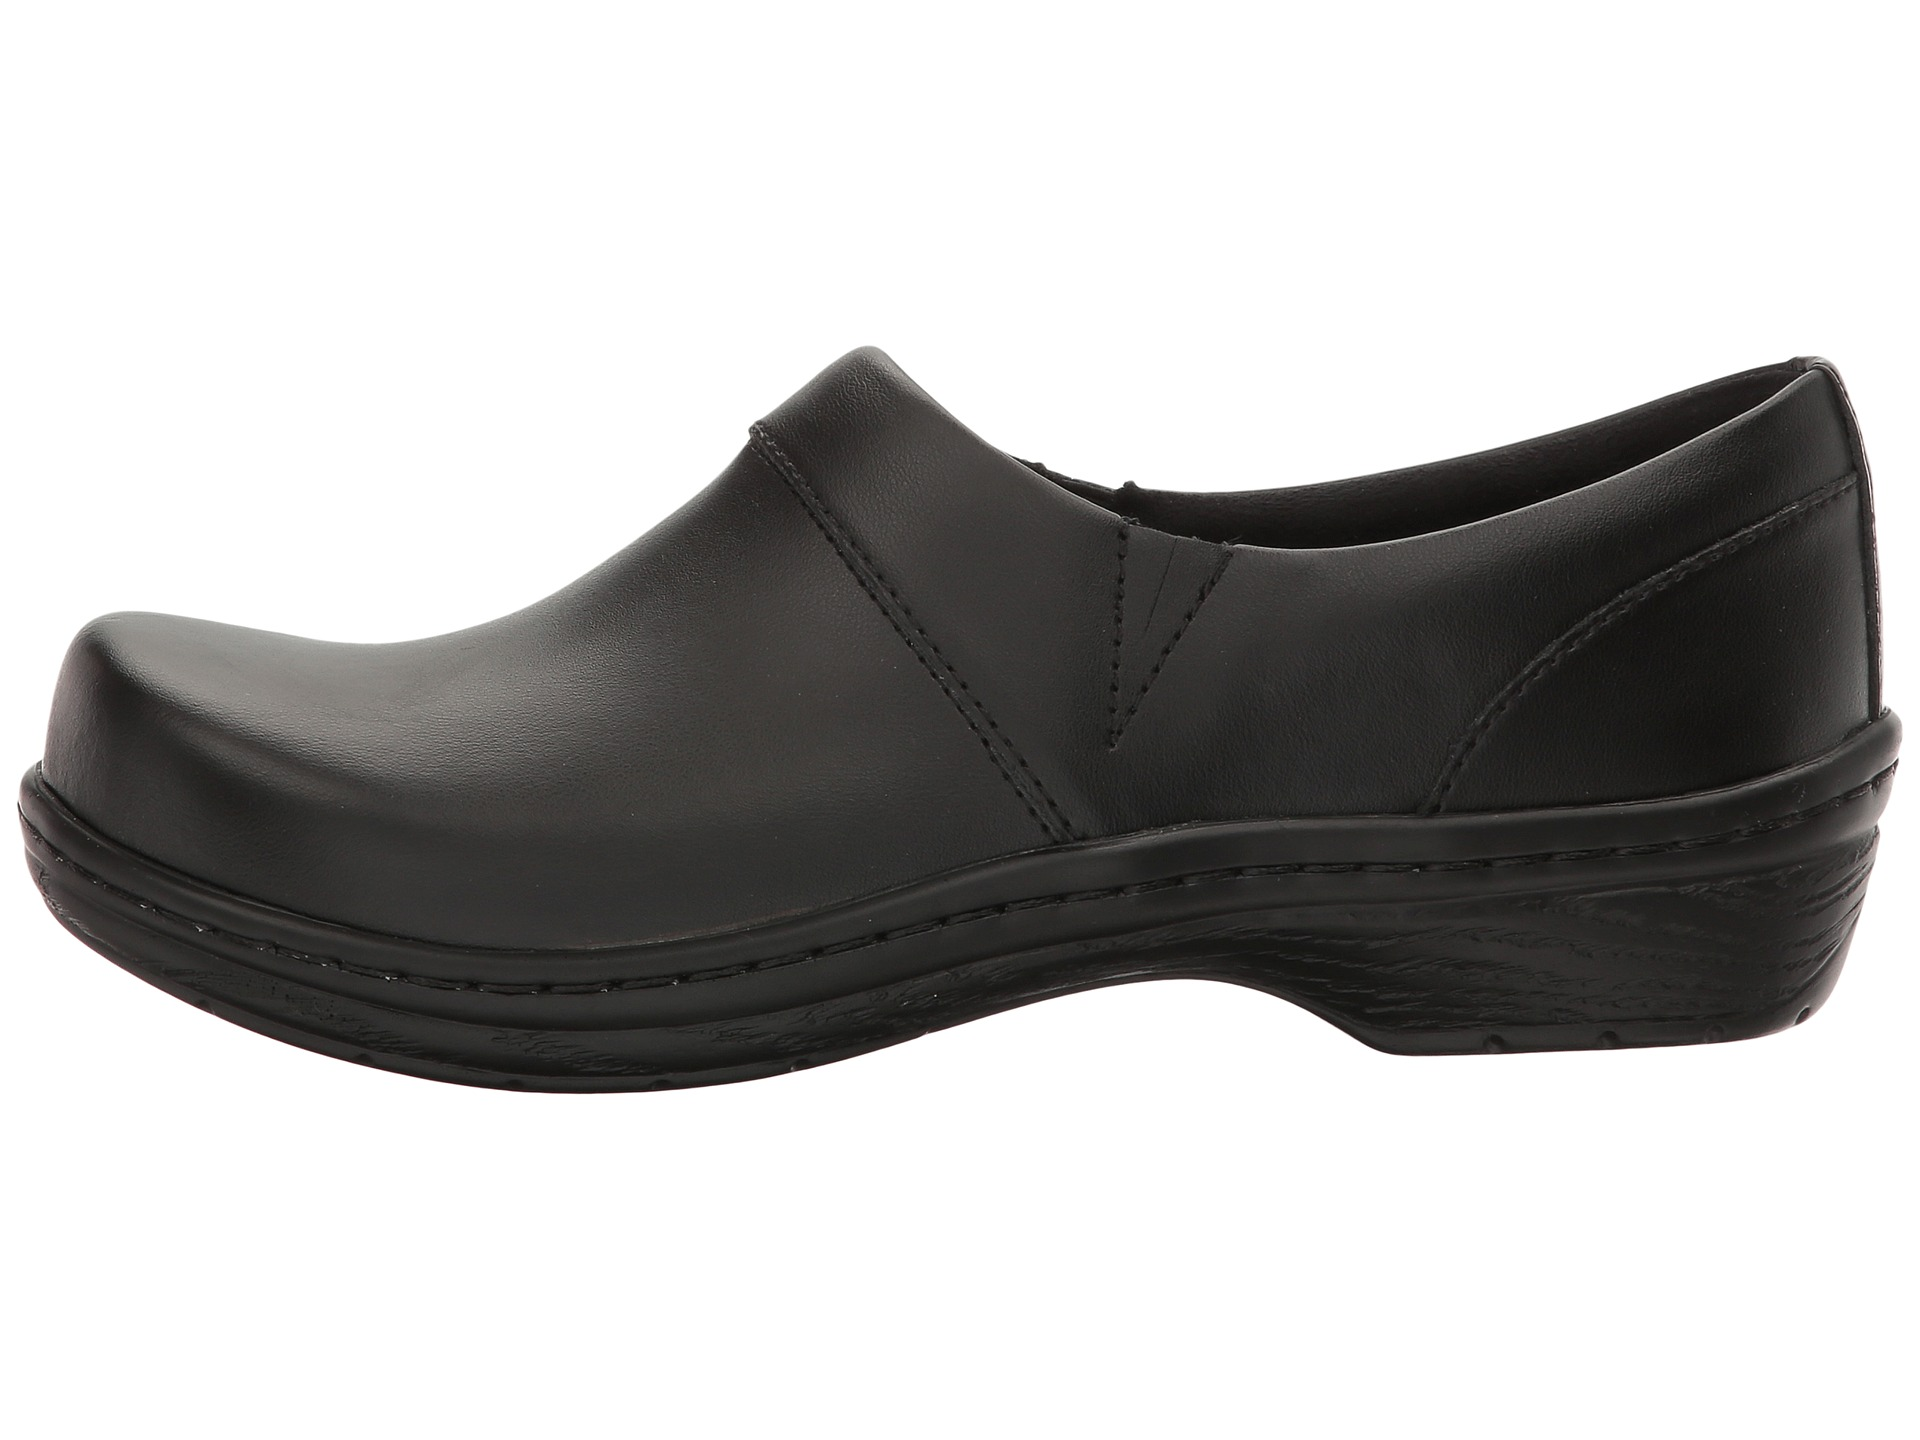 Klogs Footwear Mission Black Smooth Leather - Zappos.com Free Shipping ...